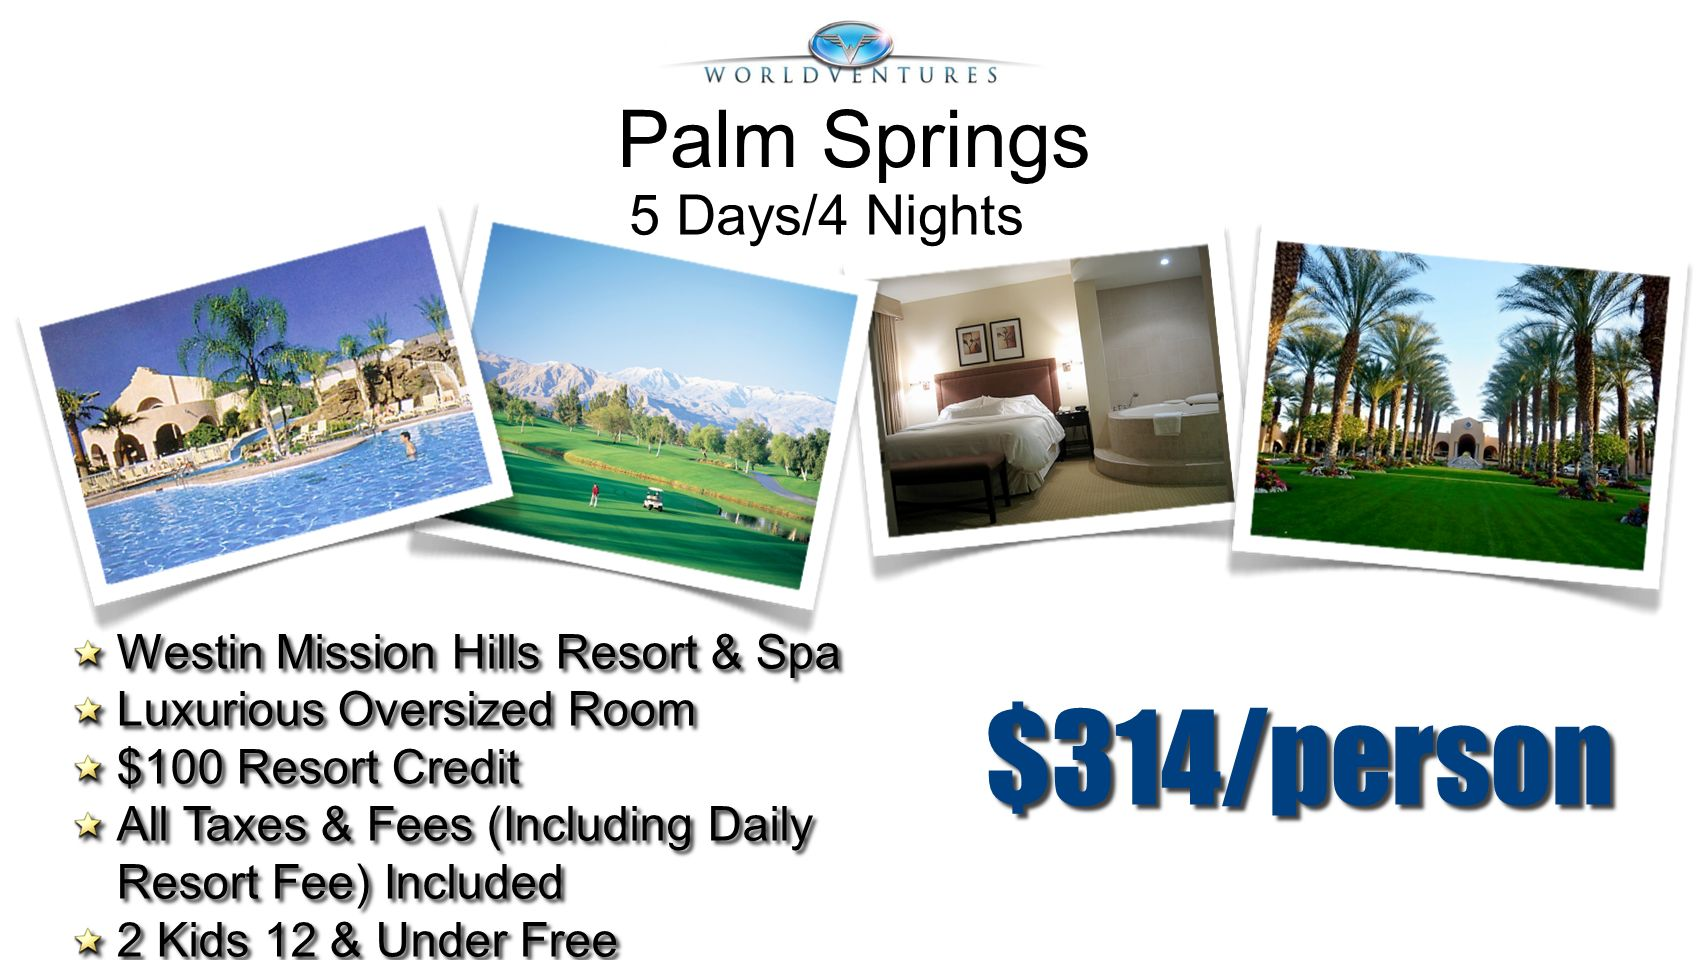 $314/person Palm Springs 5 Days/4 Nights